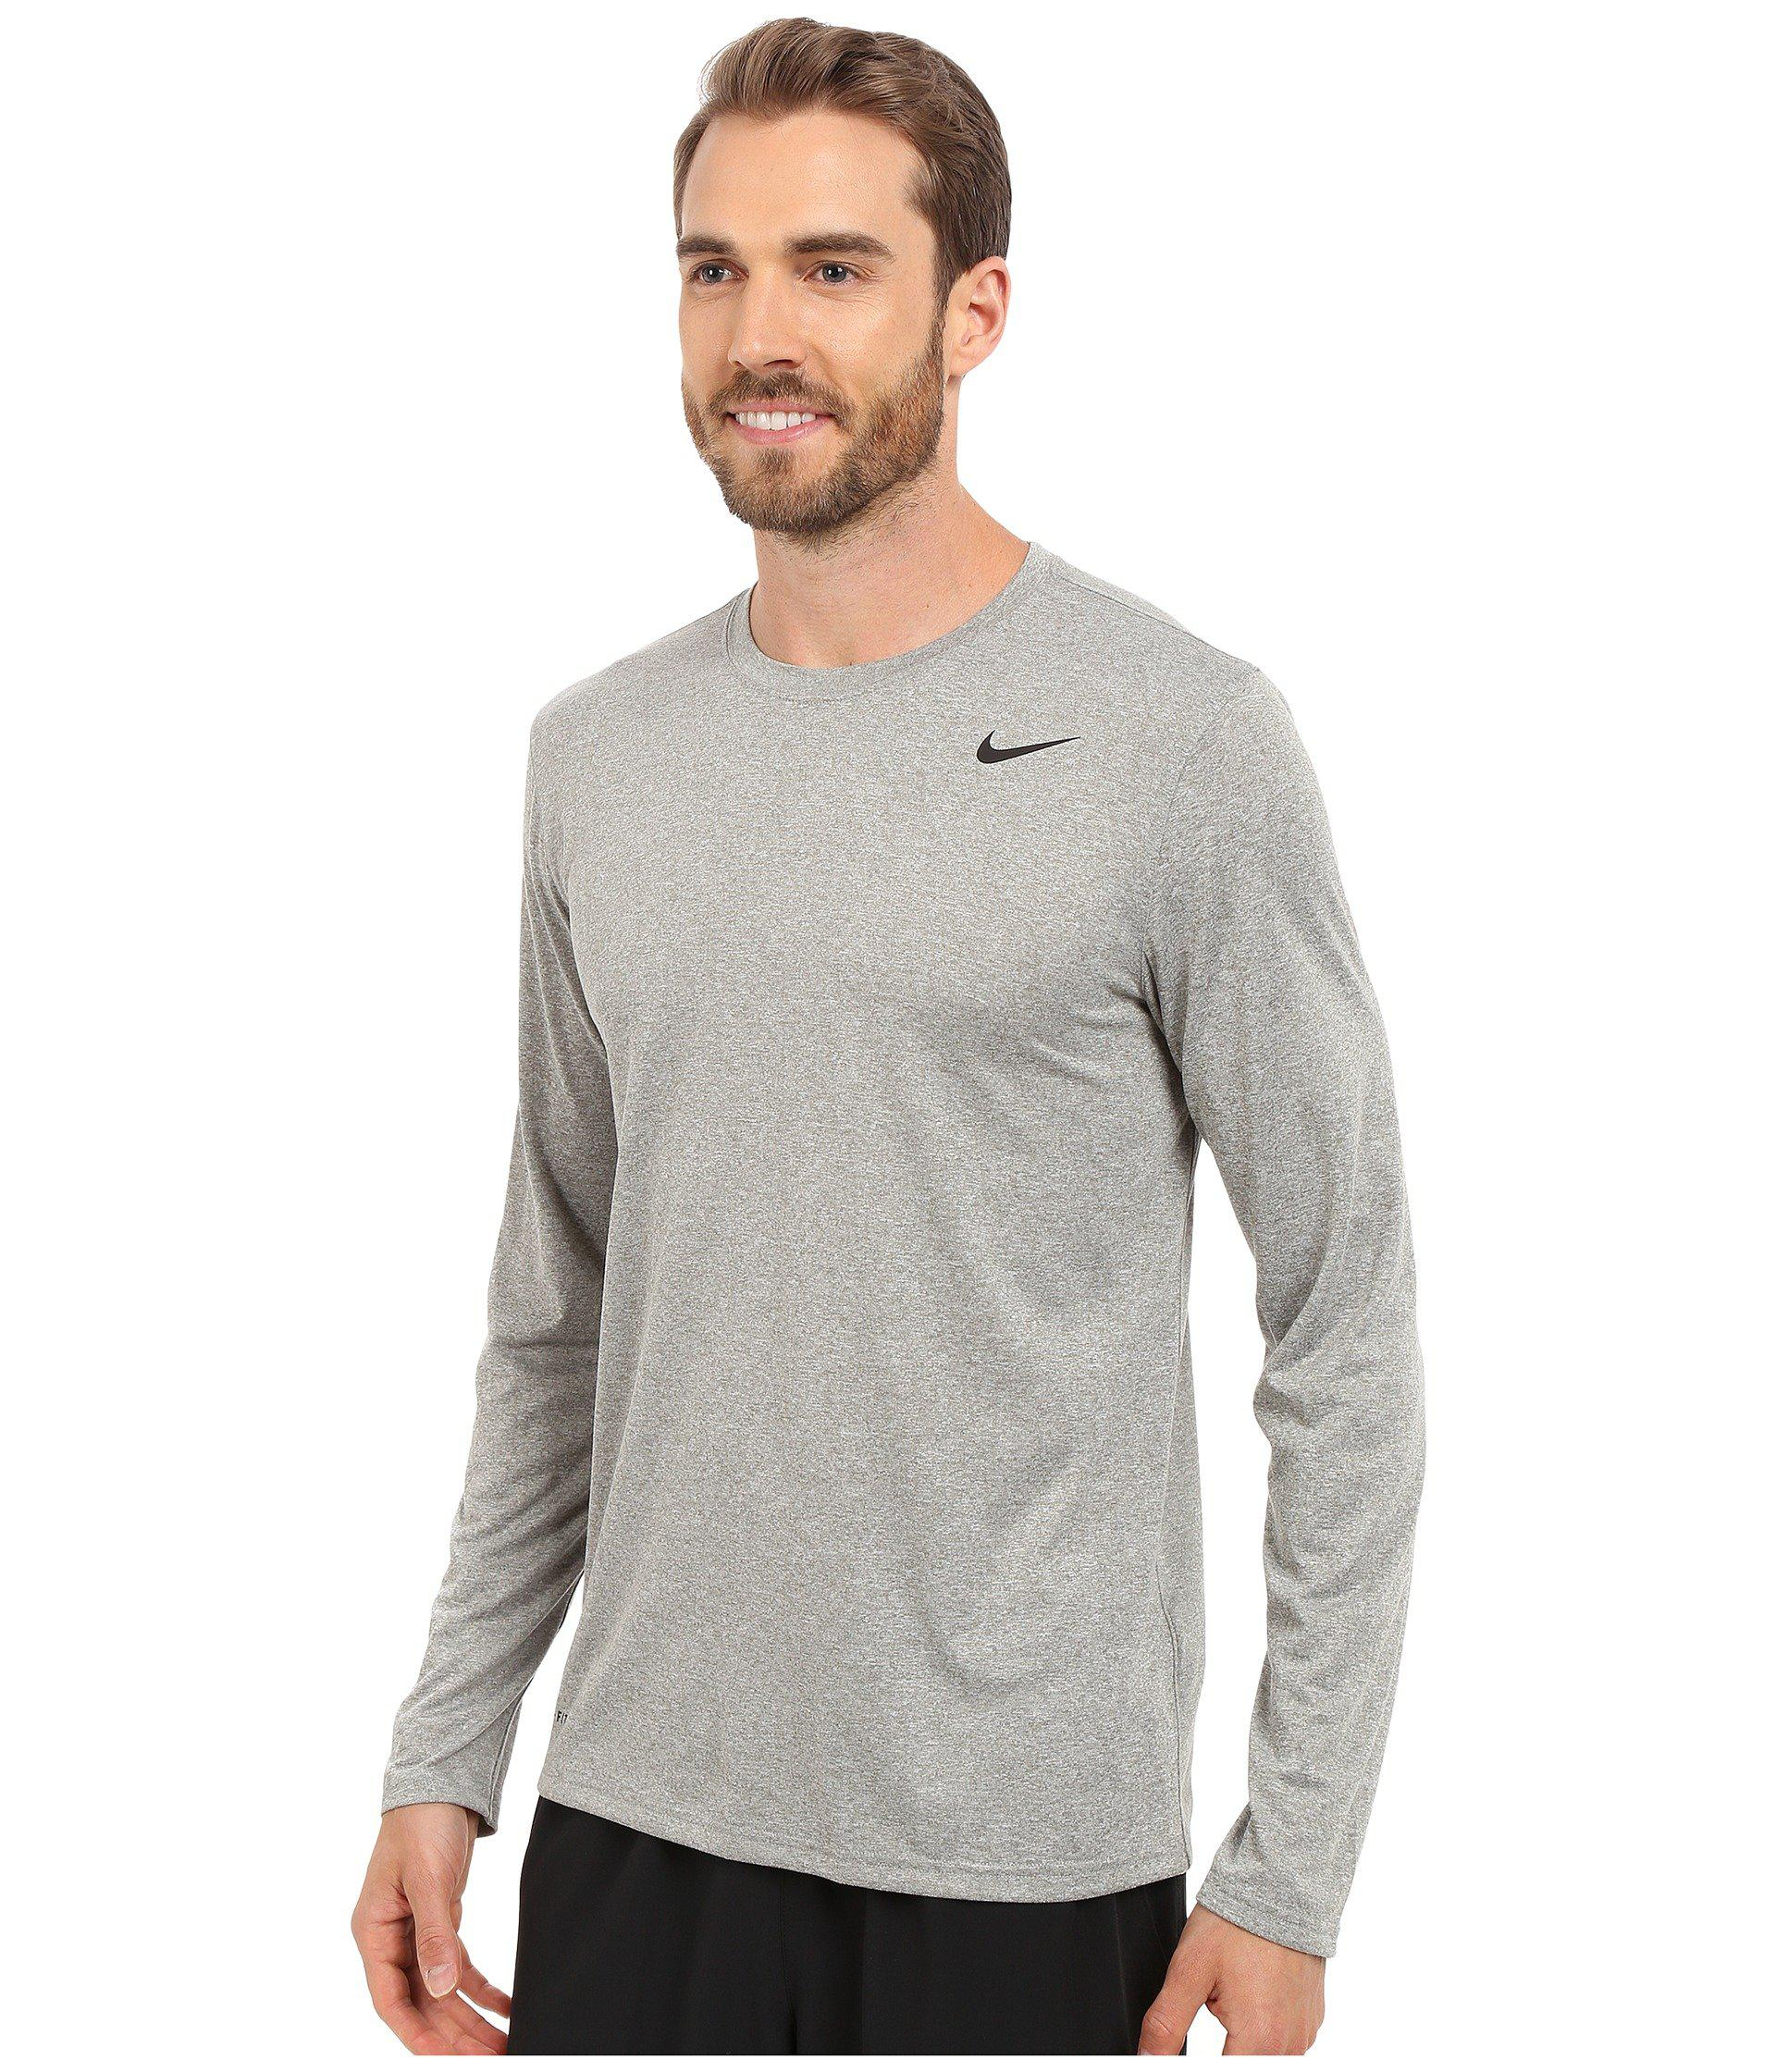 e44fb0533acb Lyst - Nike Legend 2.0 Long Sleeve Tee (white black black) Men s T Shirt in  Gray for Men